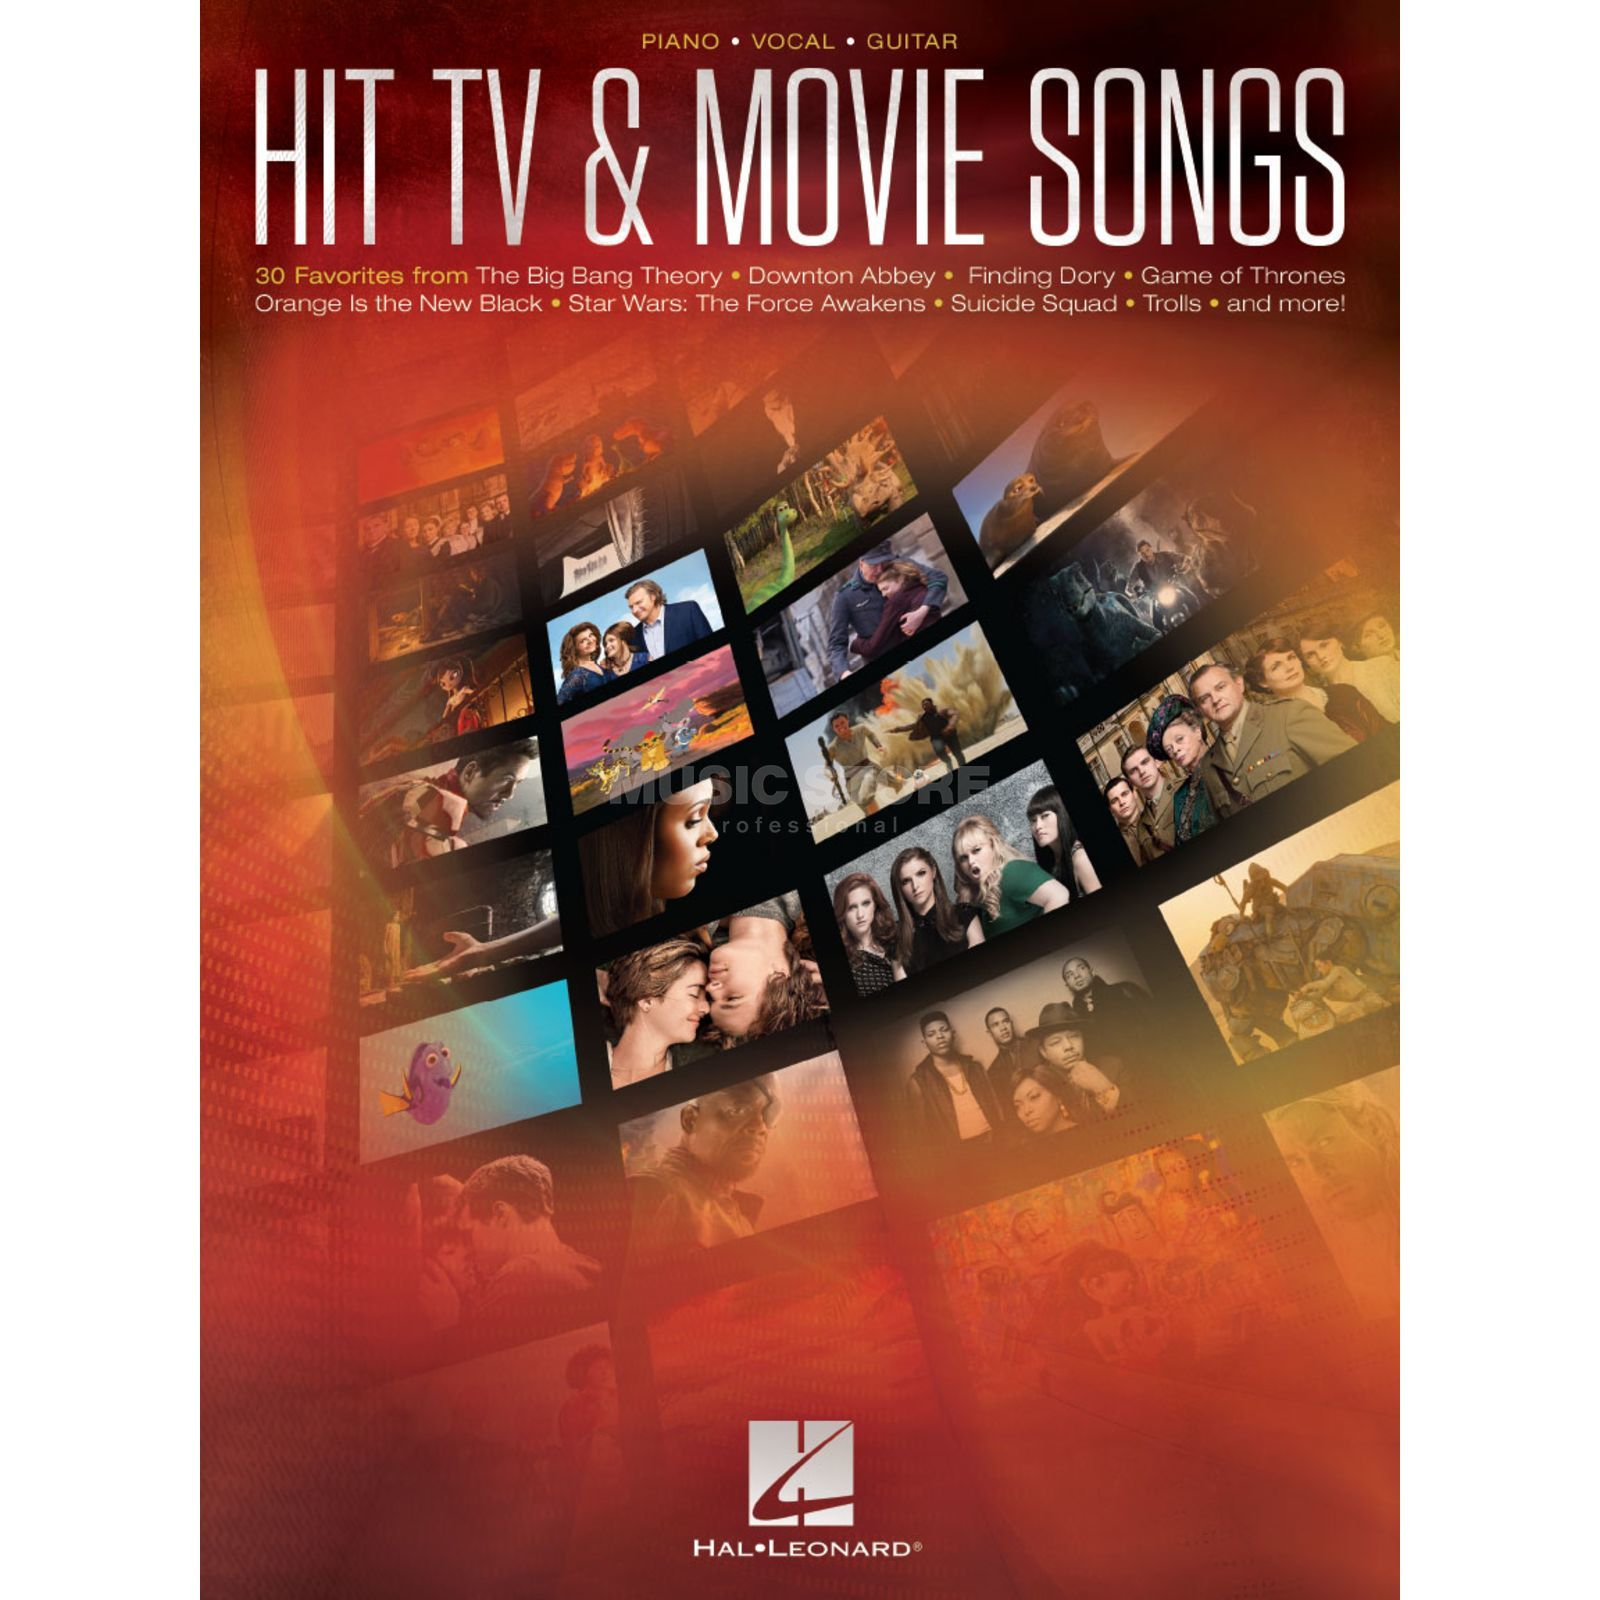 hal-leonard-hit-tv-und-movie-songs_1_NOT0011831-000 Erstaunlich Www Hit De Dekorationen